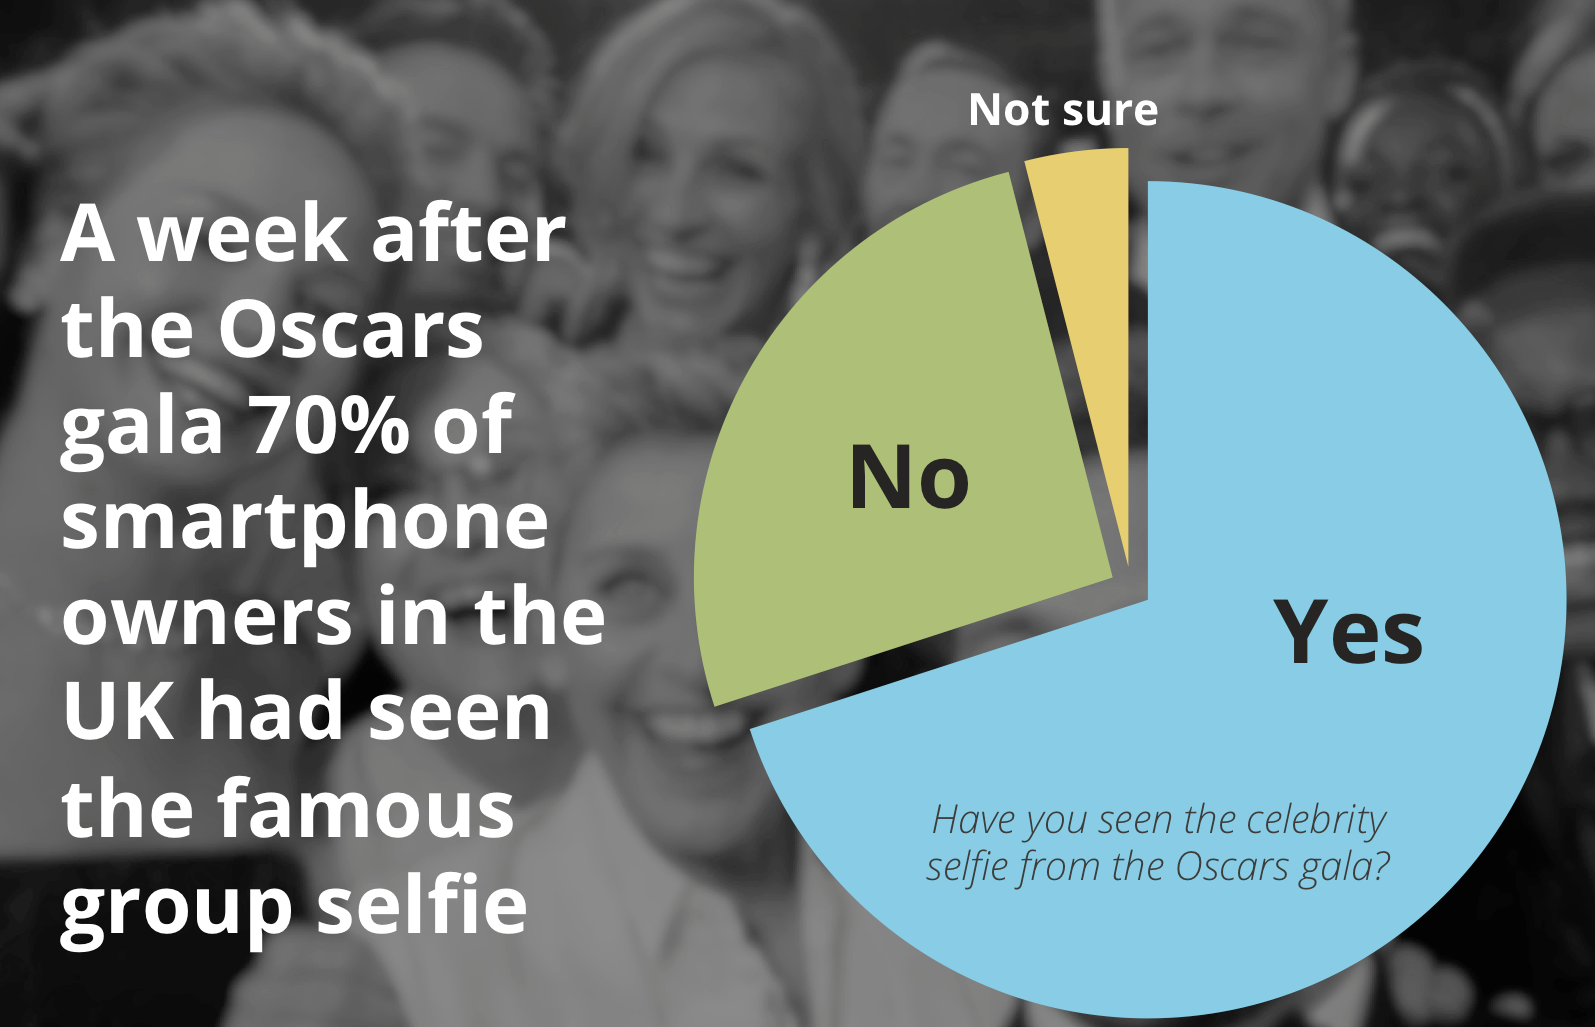 70% of UK smartphone owners seen the Oscars celebrity selfie a week after it was taken